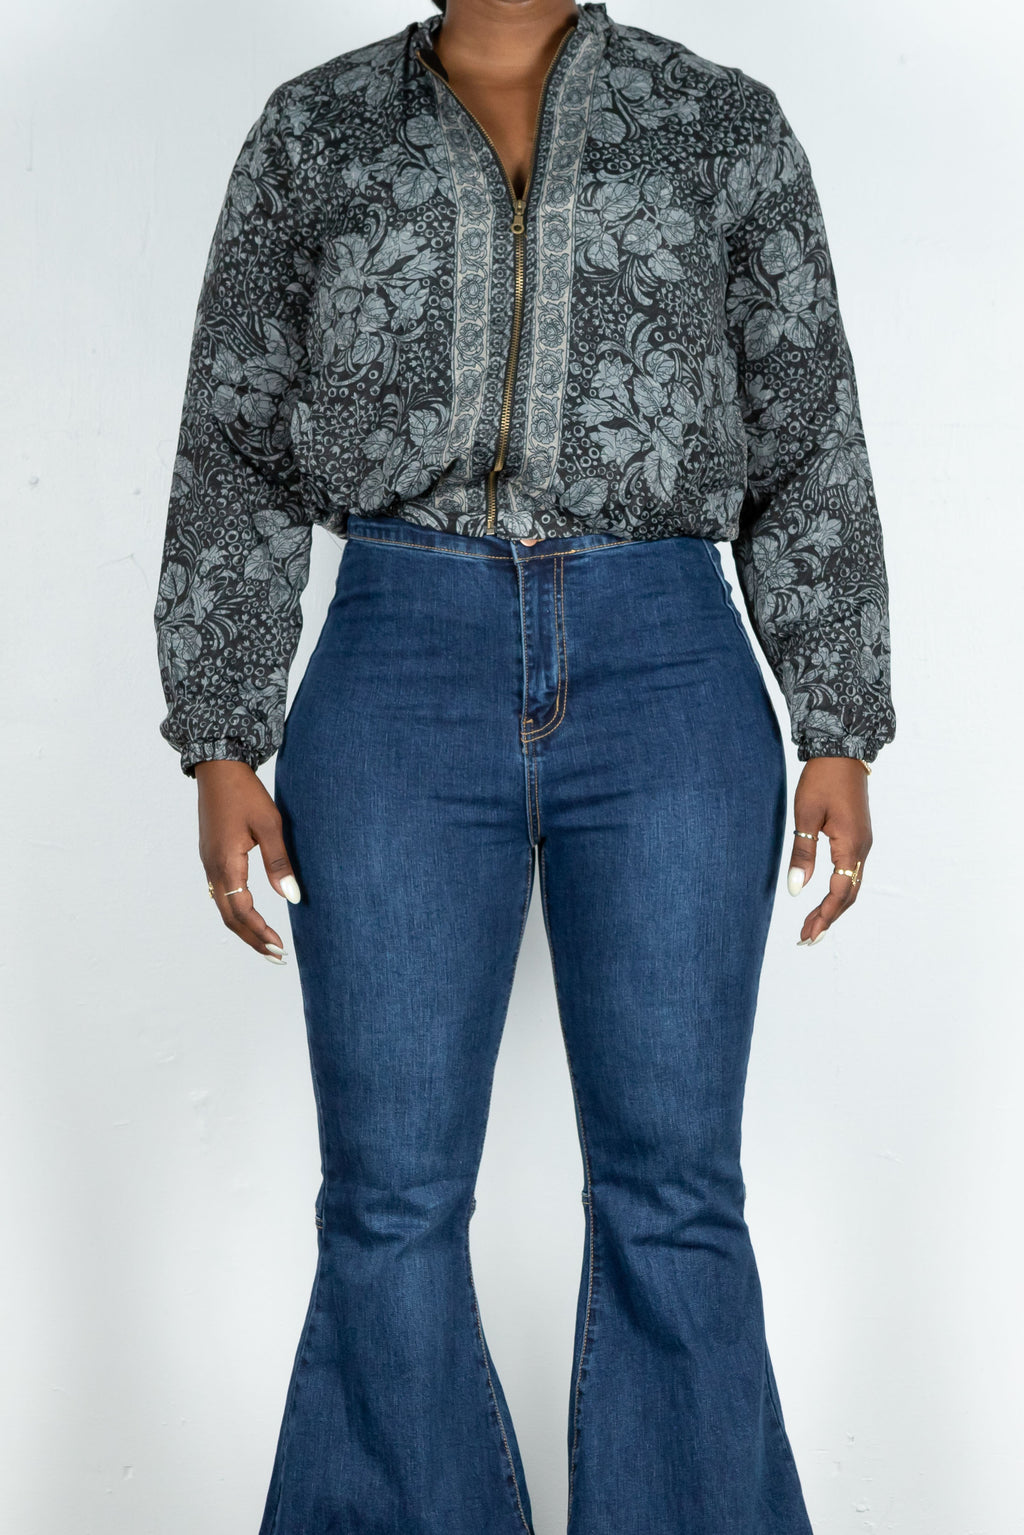 Bonnie Jacket (Black Floral)